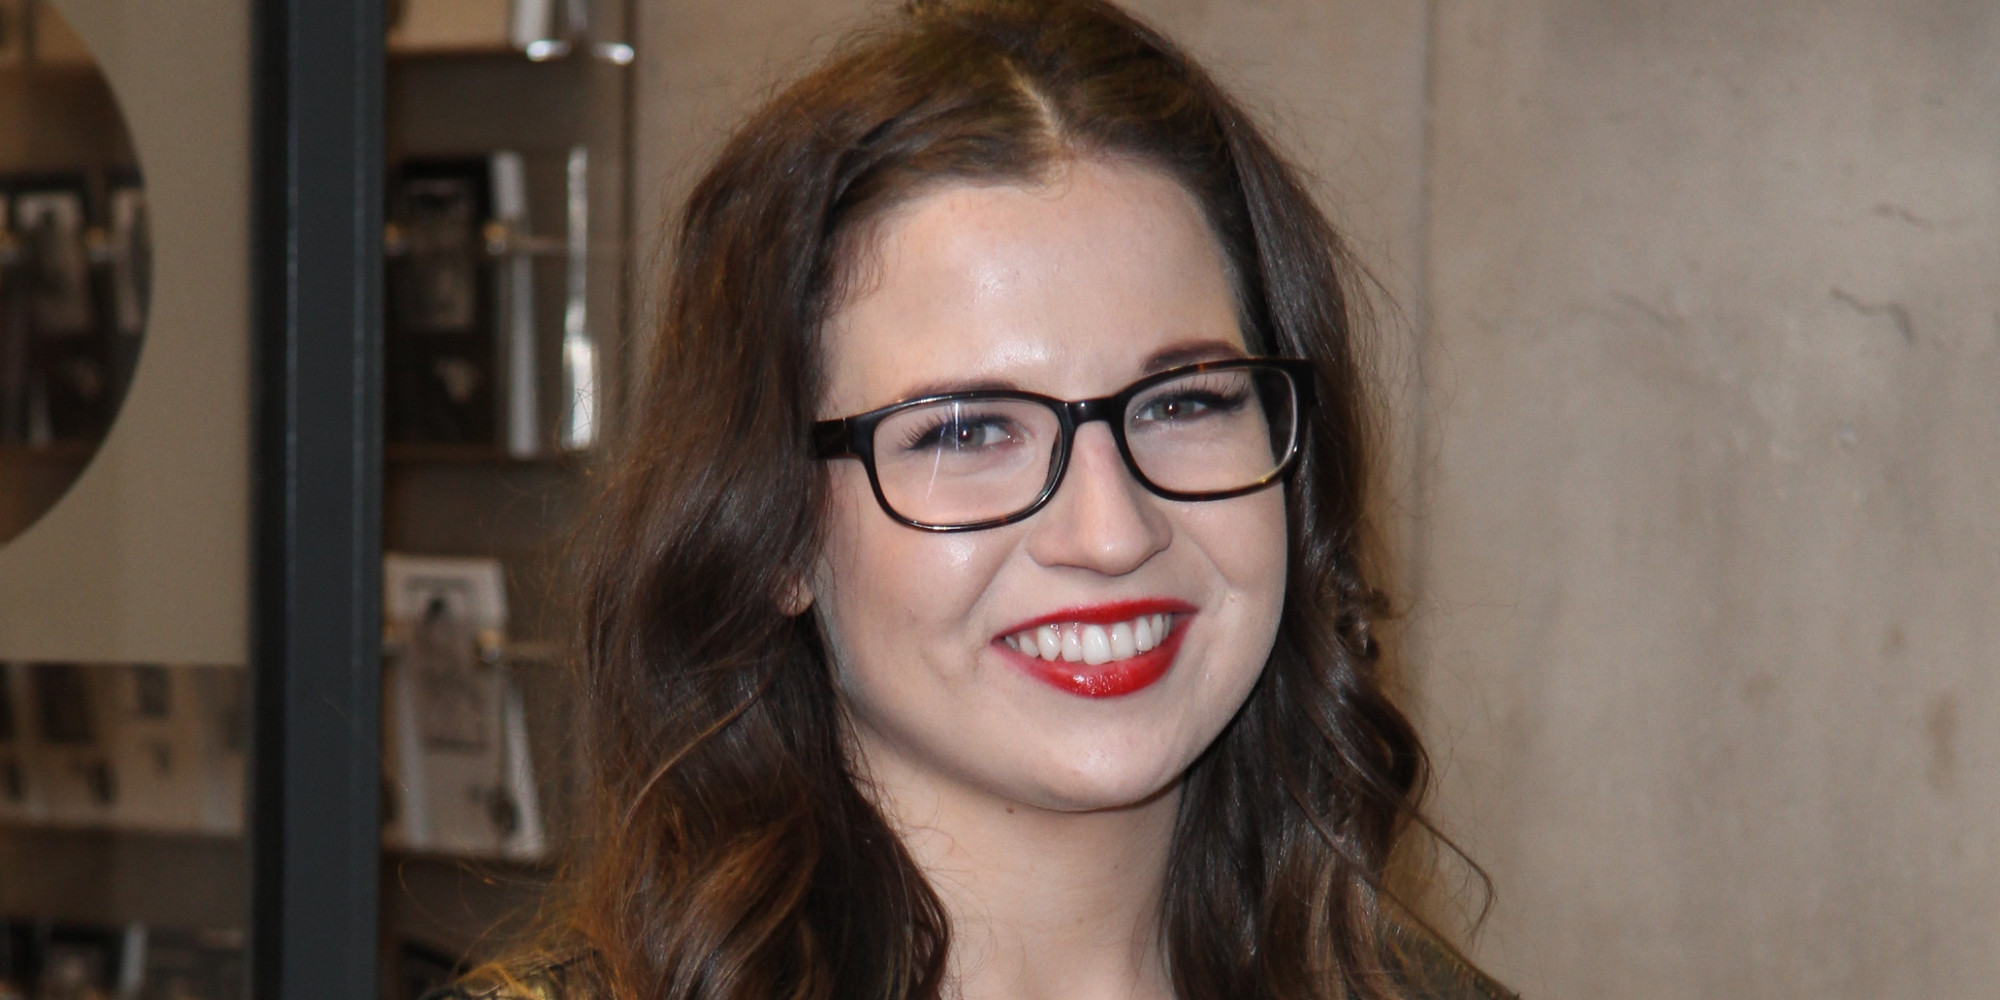 Axed 'X Factor' Hopeful Abi Alton: 'X Factor Wasn't Right For Me' | HuffPost UK